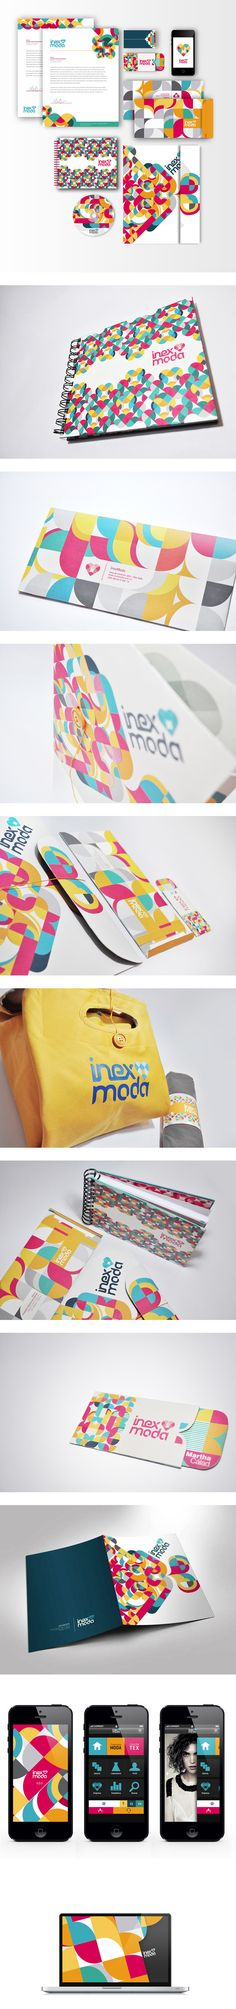 """Cool Brand Identity Design. InexModa. <a class=""""pintag searchlink"""" data-query=""""%23branding"""" data-type=""""hashtag"""" href=""""/search/?q=%23branding&rs=hashtag"""" rel=""""nofollow"""" title=""""#branding search Pinterest"""">#branding</a> <a class=""""pintag searchlink"""" data-query=""""%23brandidentity"""" data-type=""""hashtag"""" href=""""/search/?q=%23brandidentity&rs=hashtag"""" rel=""""nofollow"""" title=""""#brandidentity search Pinterest"""">#brandidentity</a> [<a href=""""http://www.pinterest.com/alfredchong/"""" rel=""""nofollow"""" target=""""_blank"""">www.pinterest.com...</a>]"""